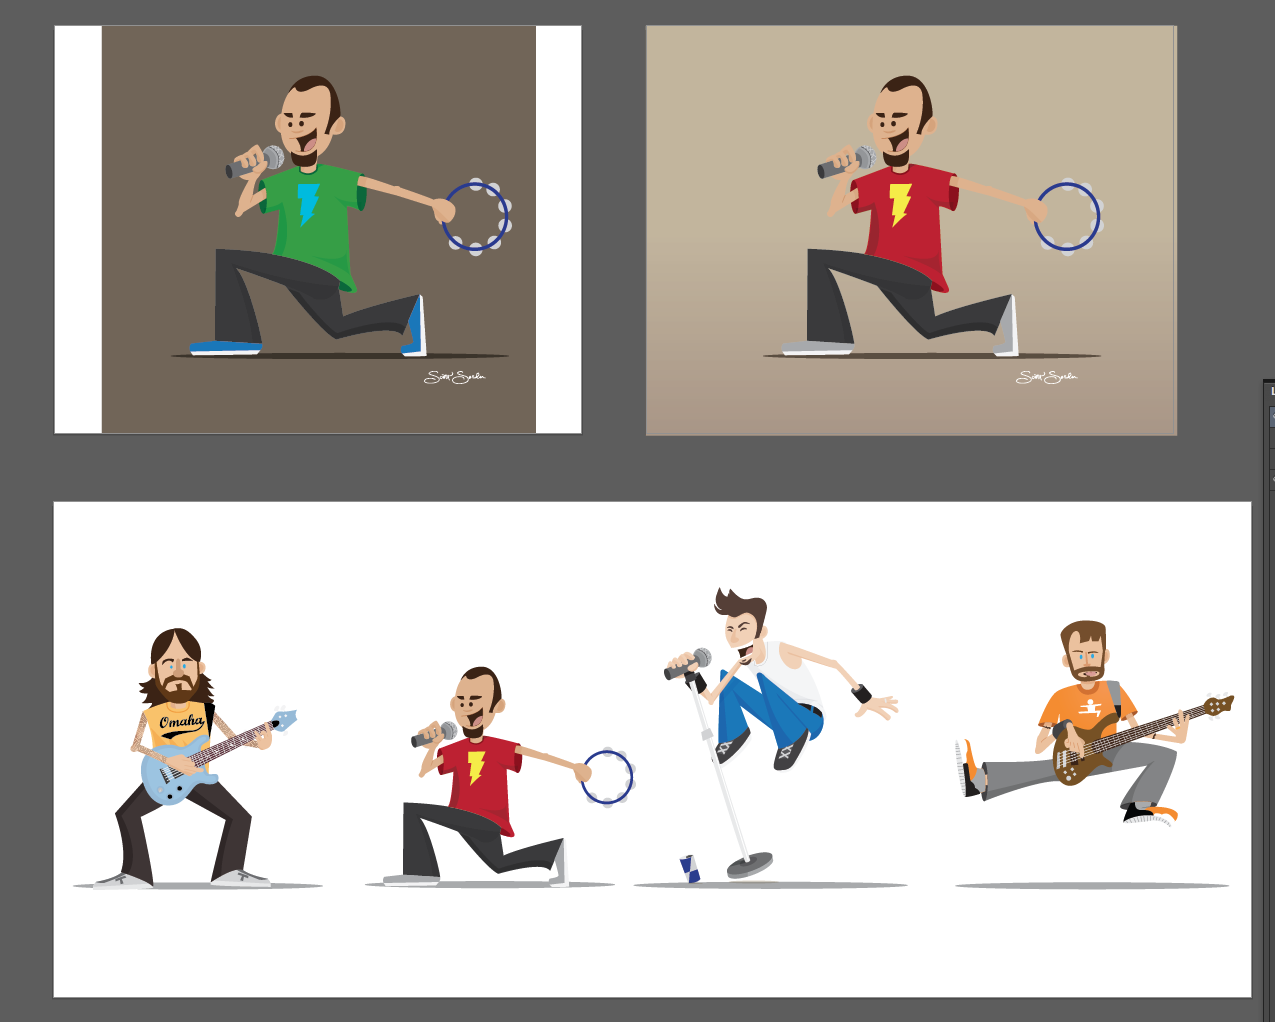 SA variations and testing the characters side by side for scale. Chad would want to bring his giant drum set so he is left out here. Drummer's curse.